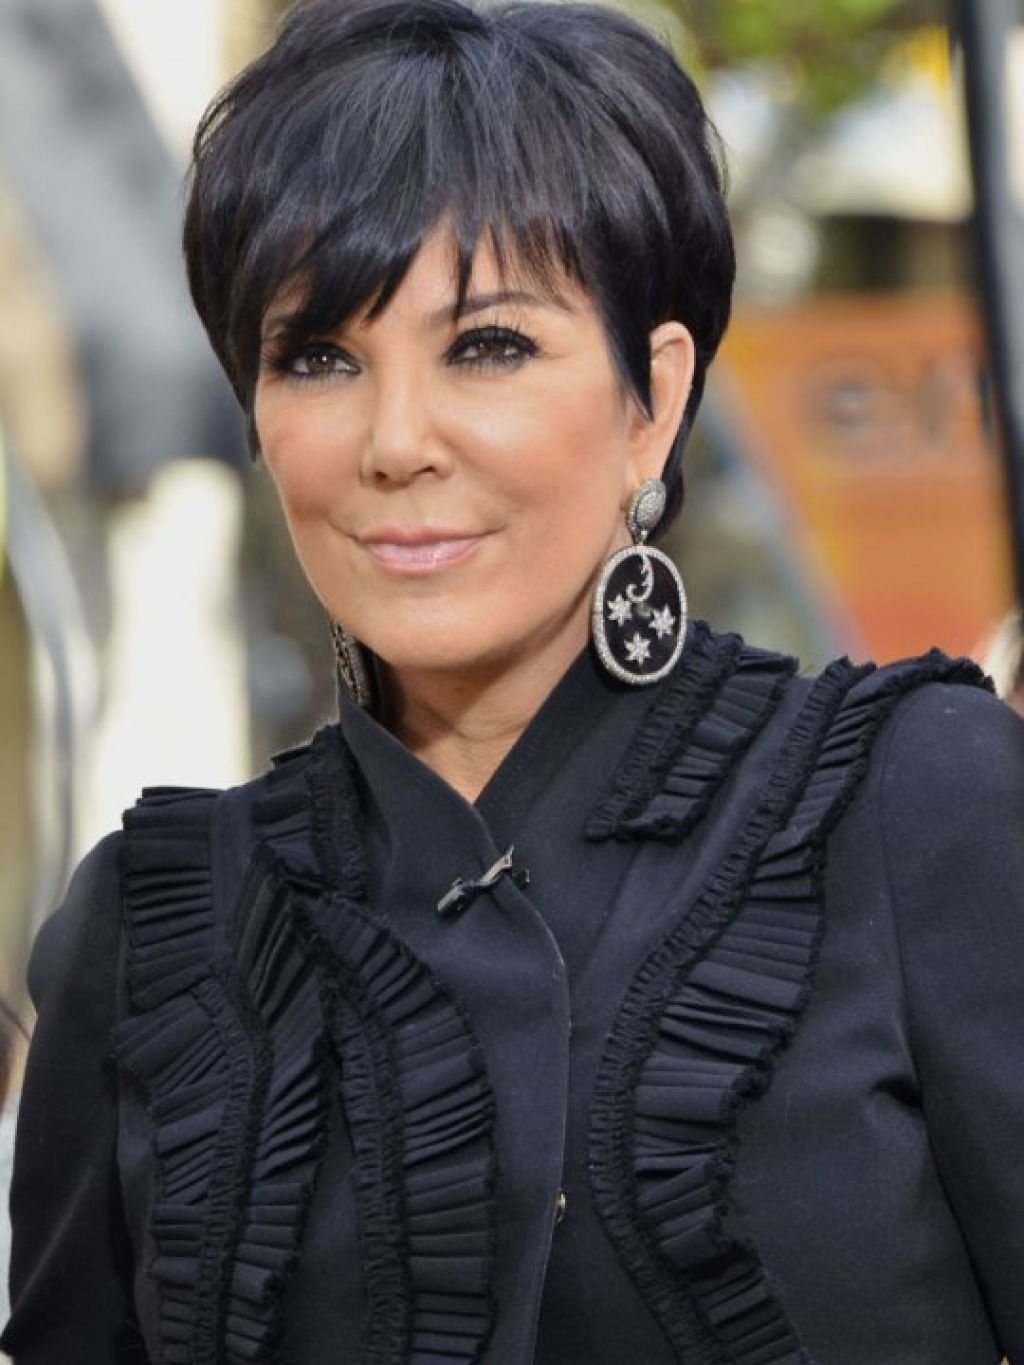 Hairstyles Kris Jenner Simple Short Hair Style , This Style Is Using For Short Haircuts Kris Jenner (View 1 of 25)